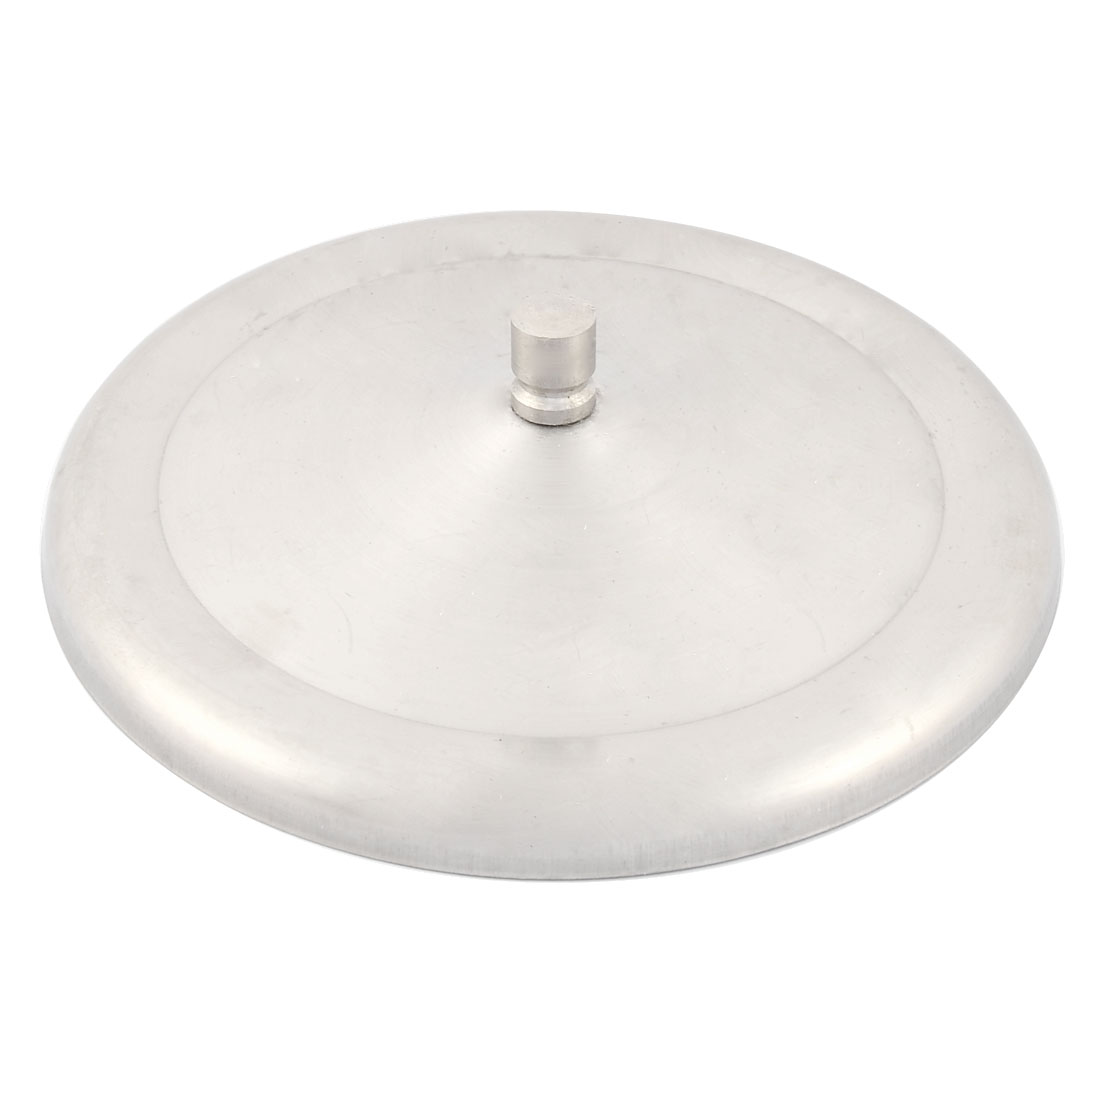 Household Home Stainless Steel Tea Coffee Water Cup Lid Cover Silver Tone